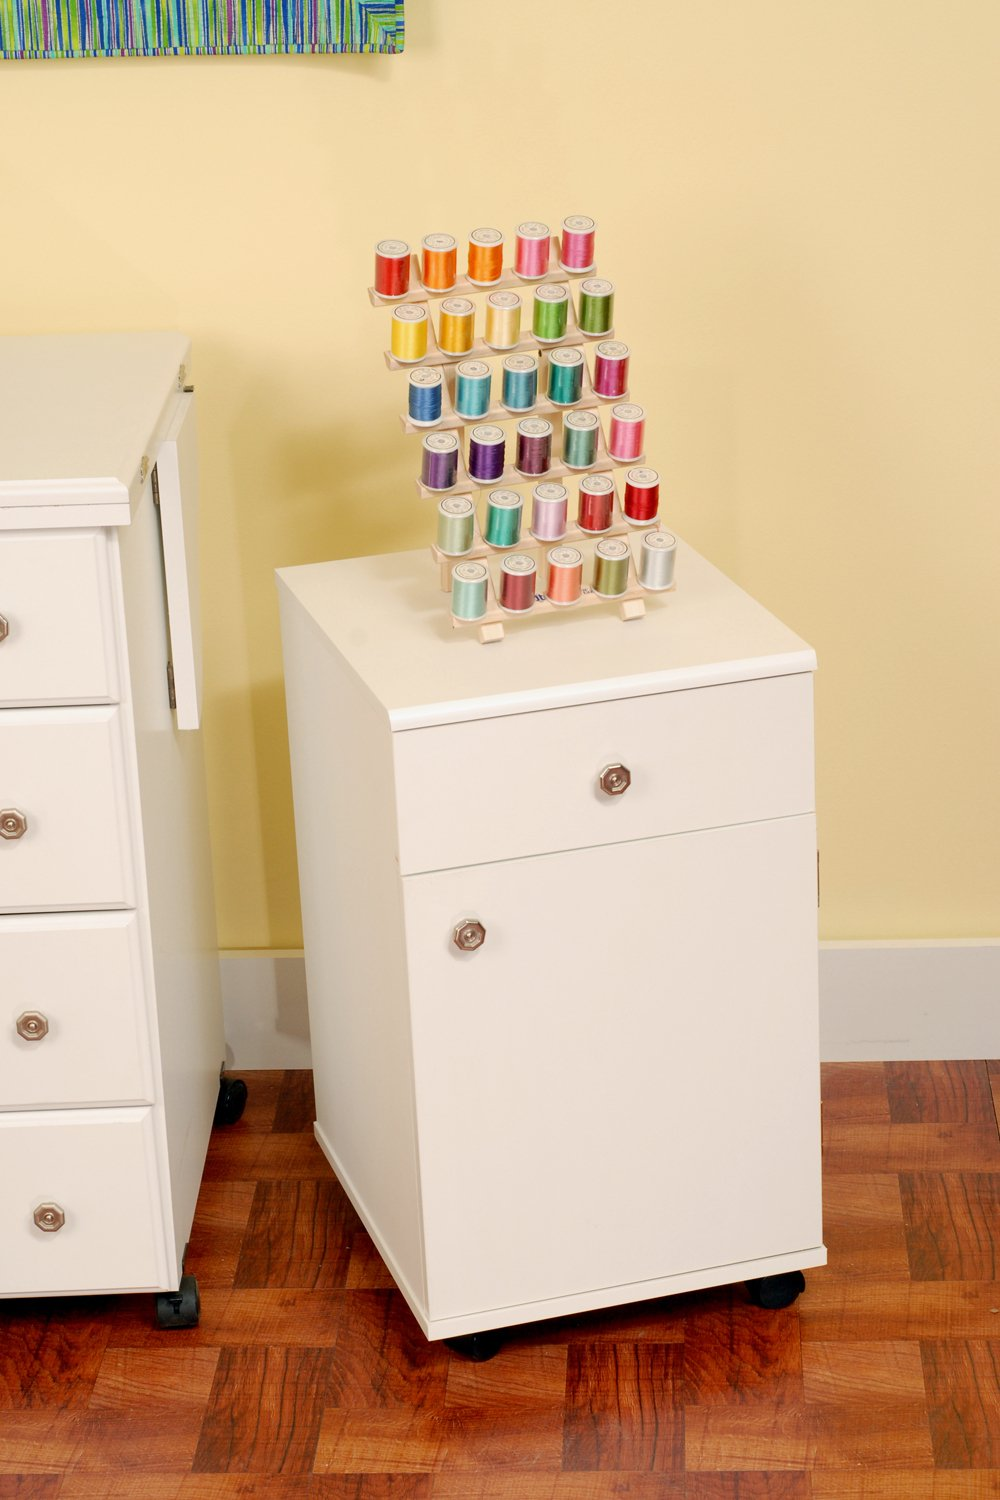 High Quality Amazon.com: Arrow Sewing Cabinets 801 Suzi, Four Drawer Sewing Storage  Cabinent, White